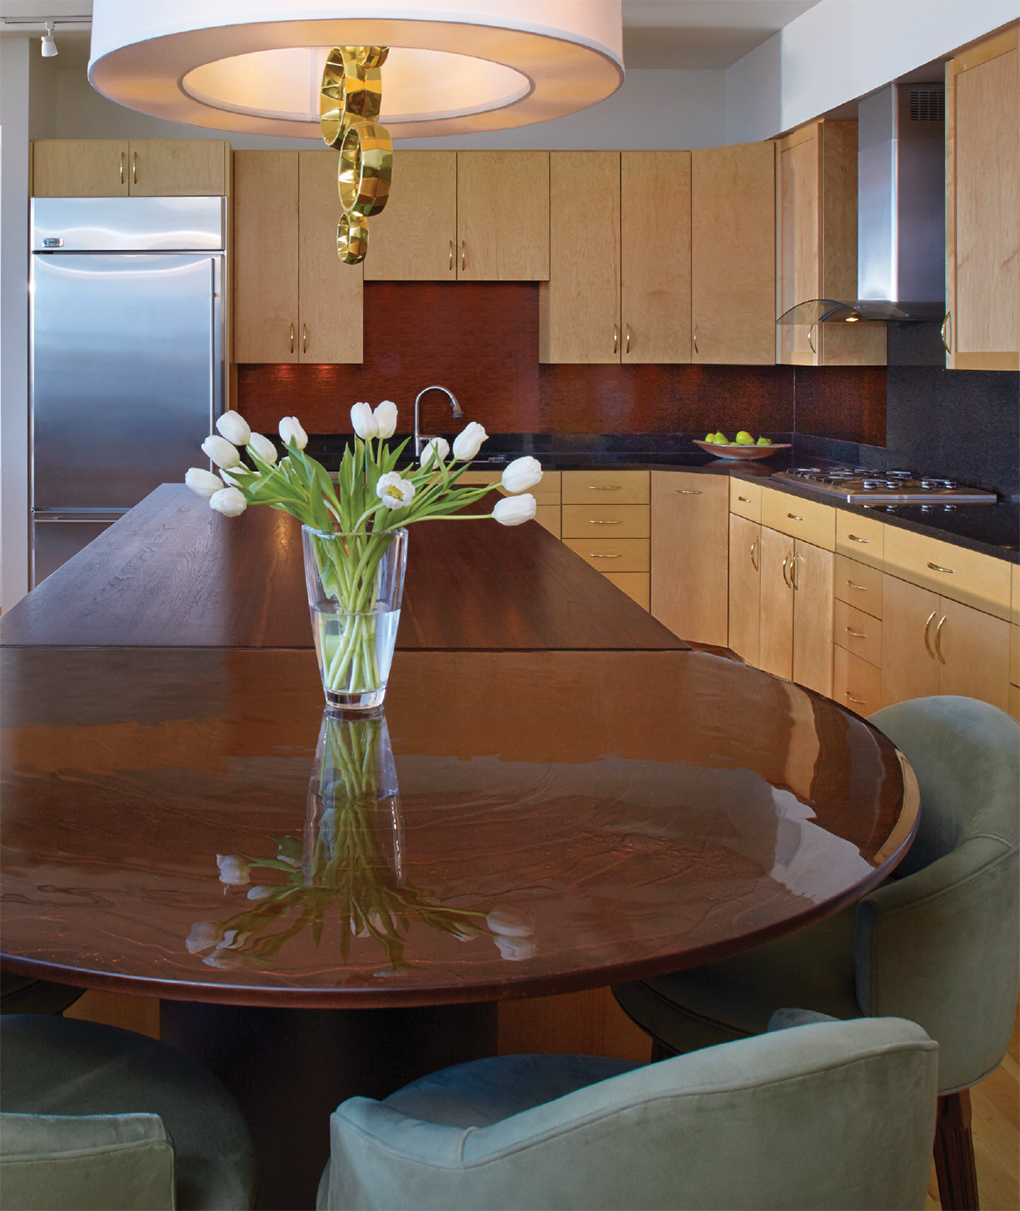 Kitchen and dining with dark wood tables and light wood cabinet space with stainless steel fridge